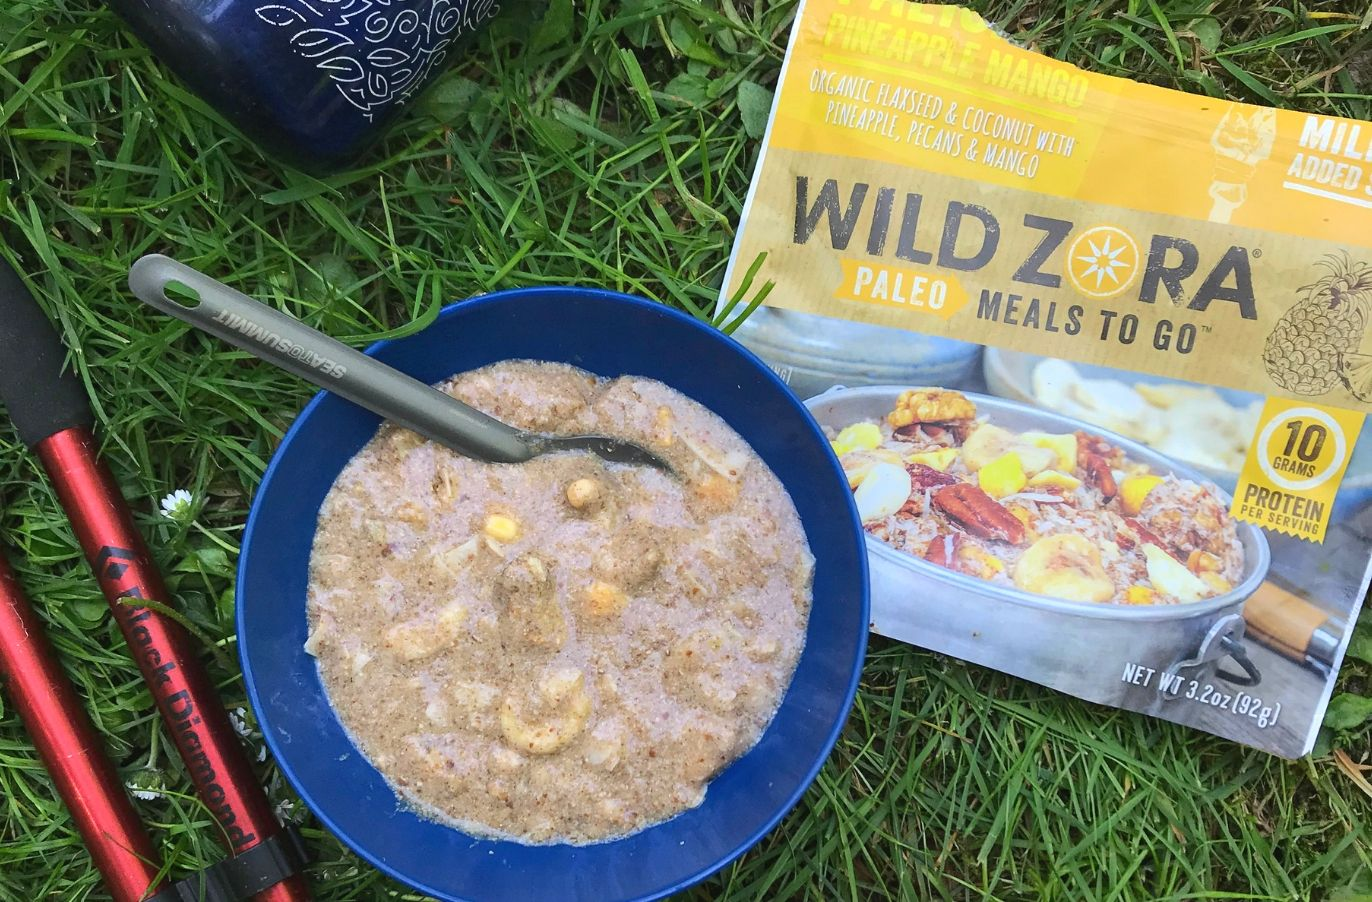 Wild Zora paleo meals to go package beside a bowl of paleo porridge on a grassy surface